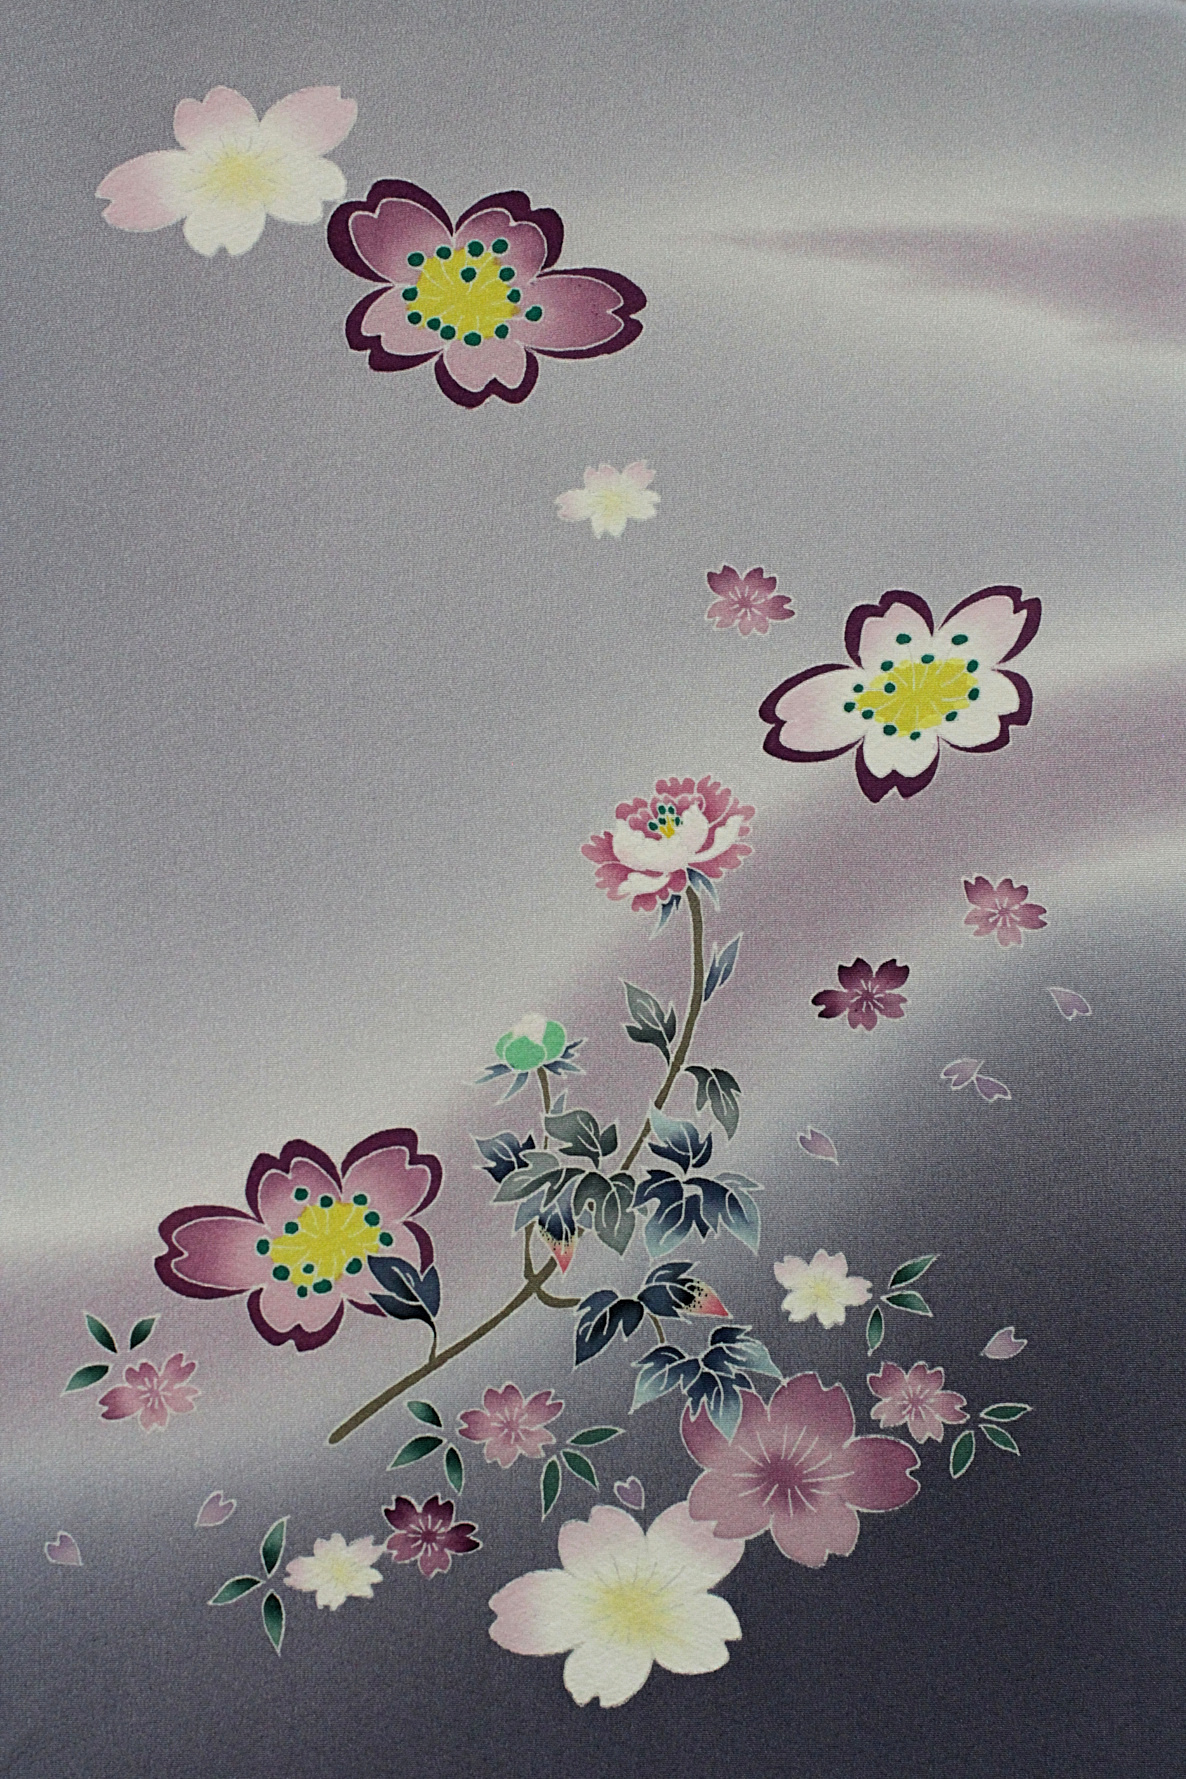 A depiction of flowers in the wind against a misty gray and purple background, painted on Kaga-yuzen silk for a kimono and designed by Teranishi